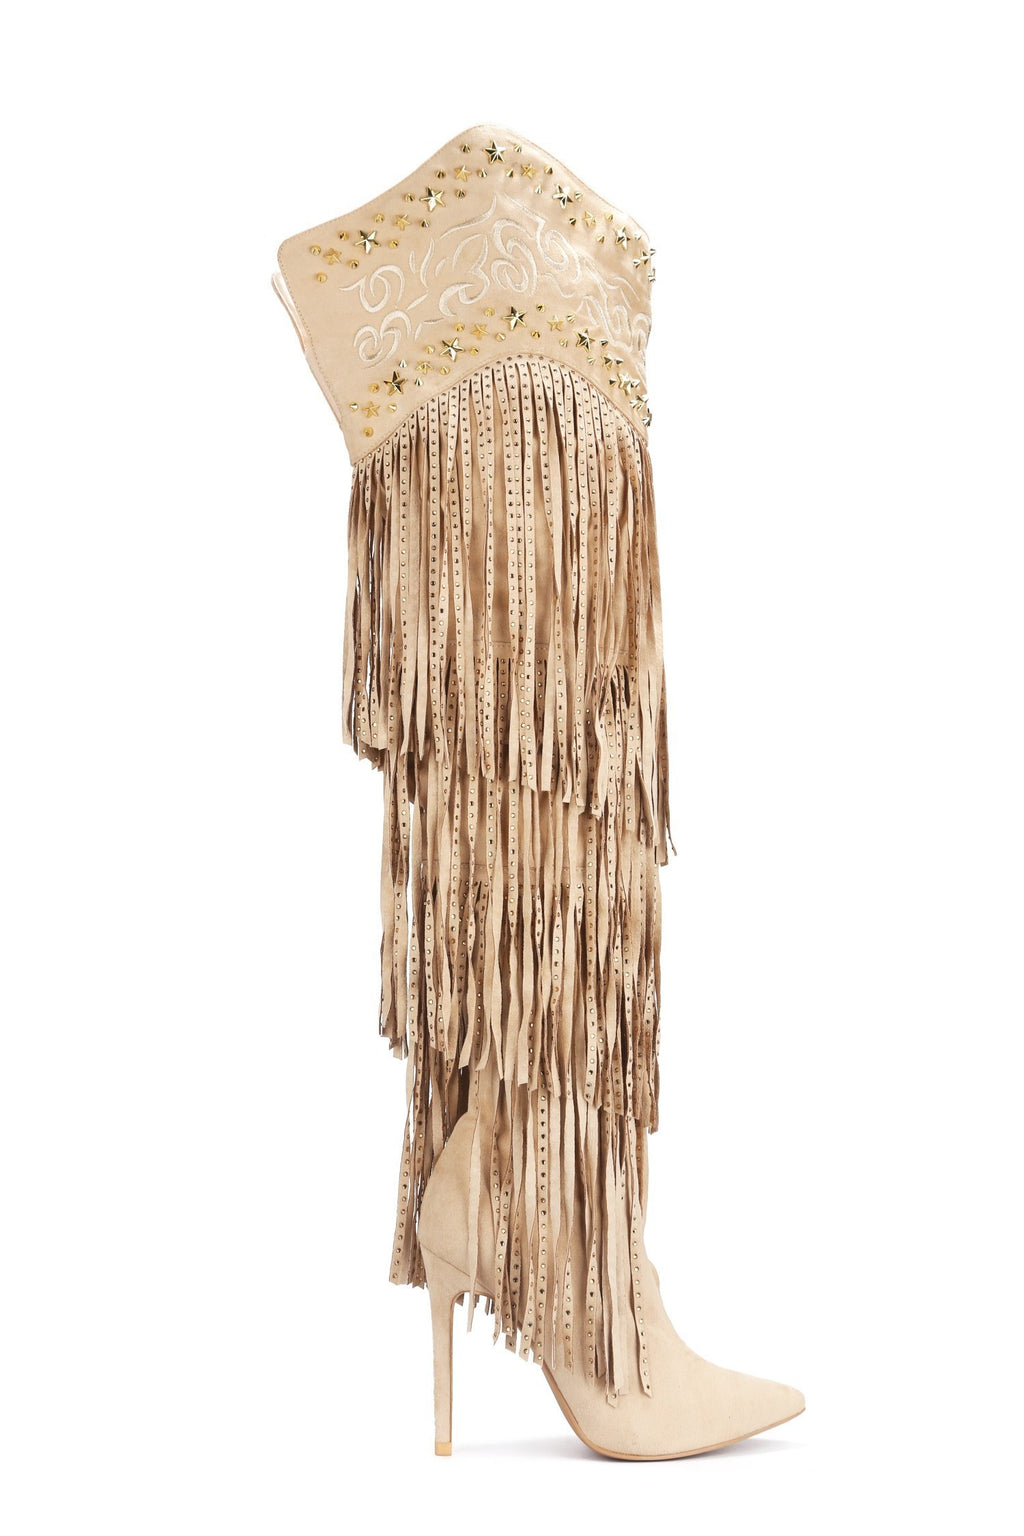 Cape Robbin High Tide Nude Over The Knee Heel With Fringe and Studded Detail.